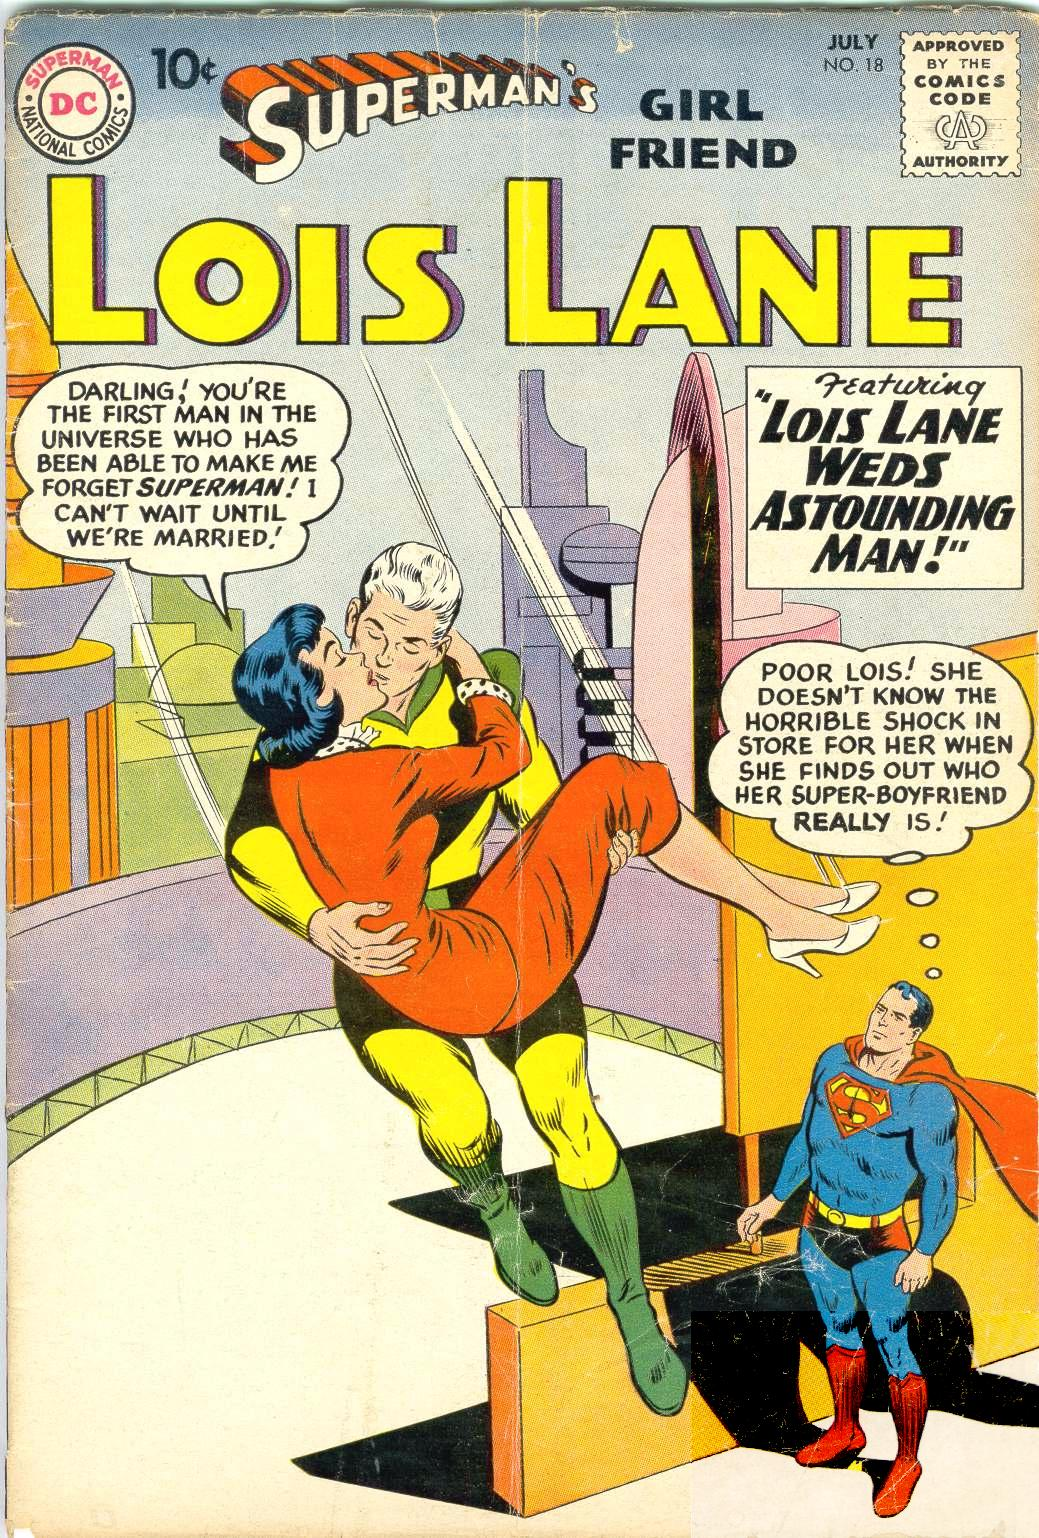 graphic relating to Lois Lane Press Pass Printable named Lois Lane Symbol Quotations of the Working day